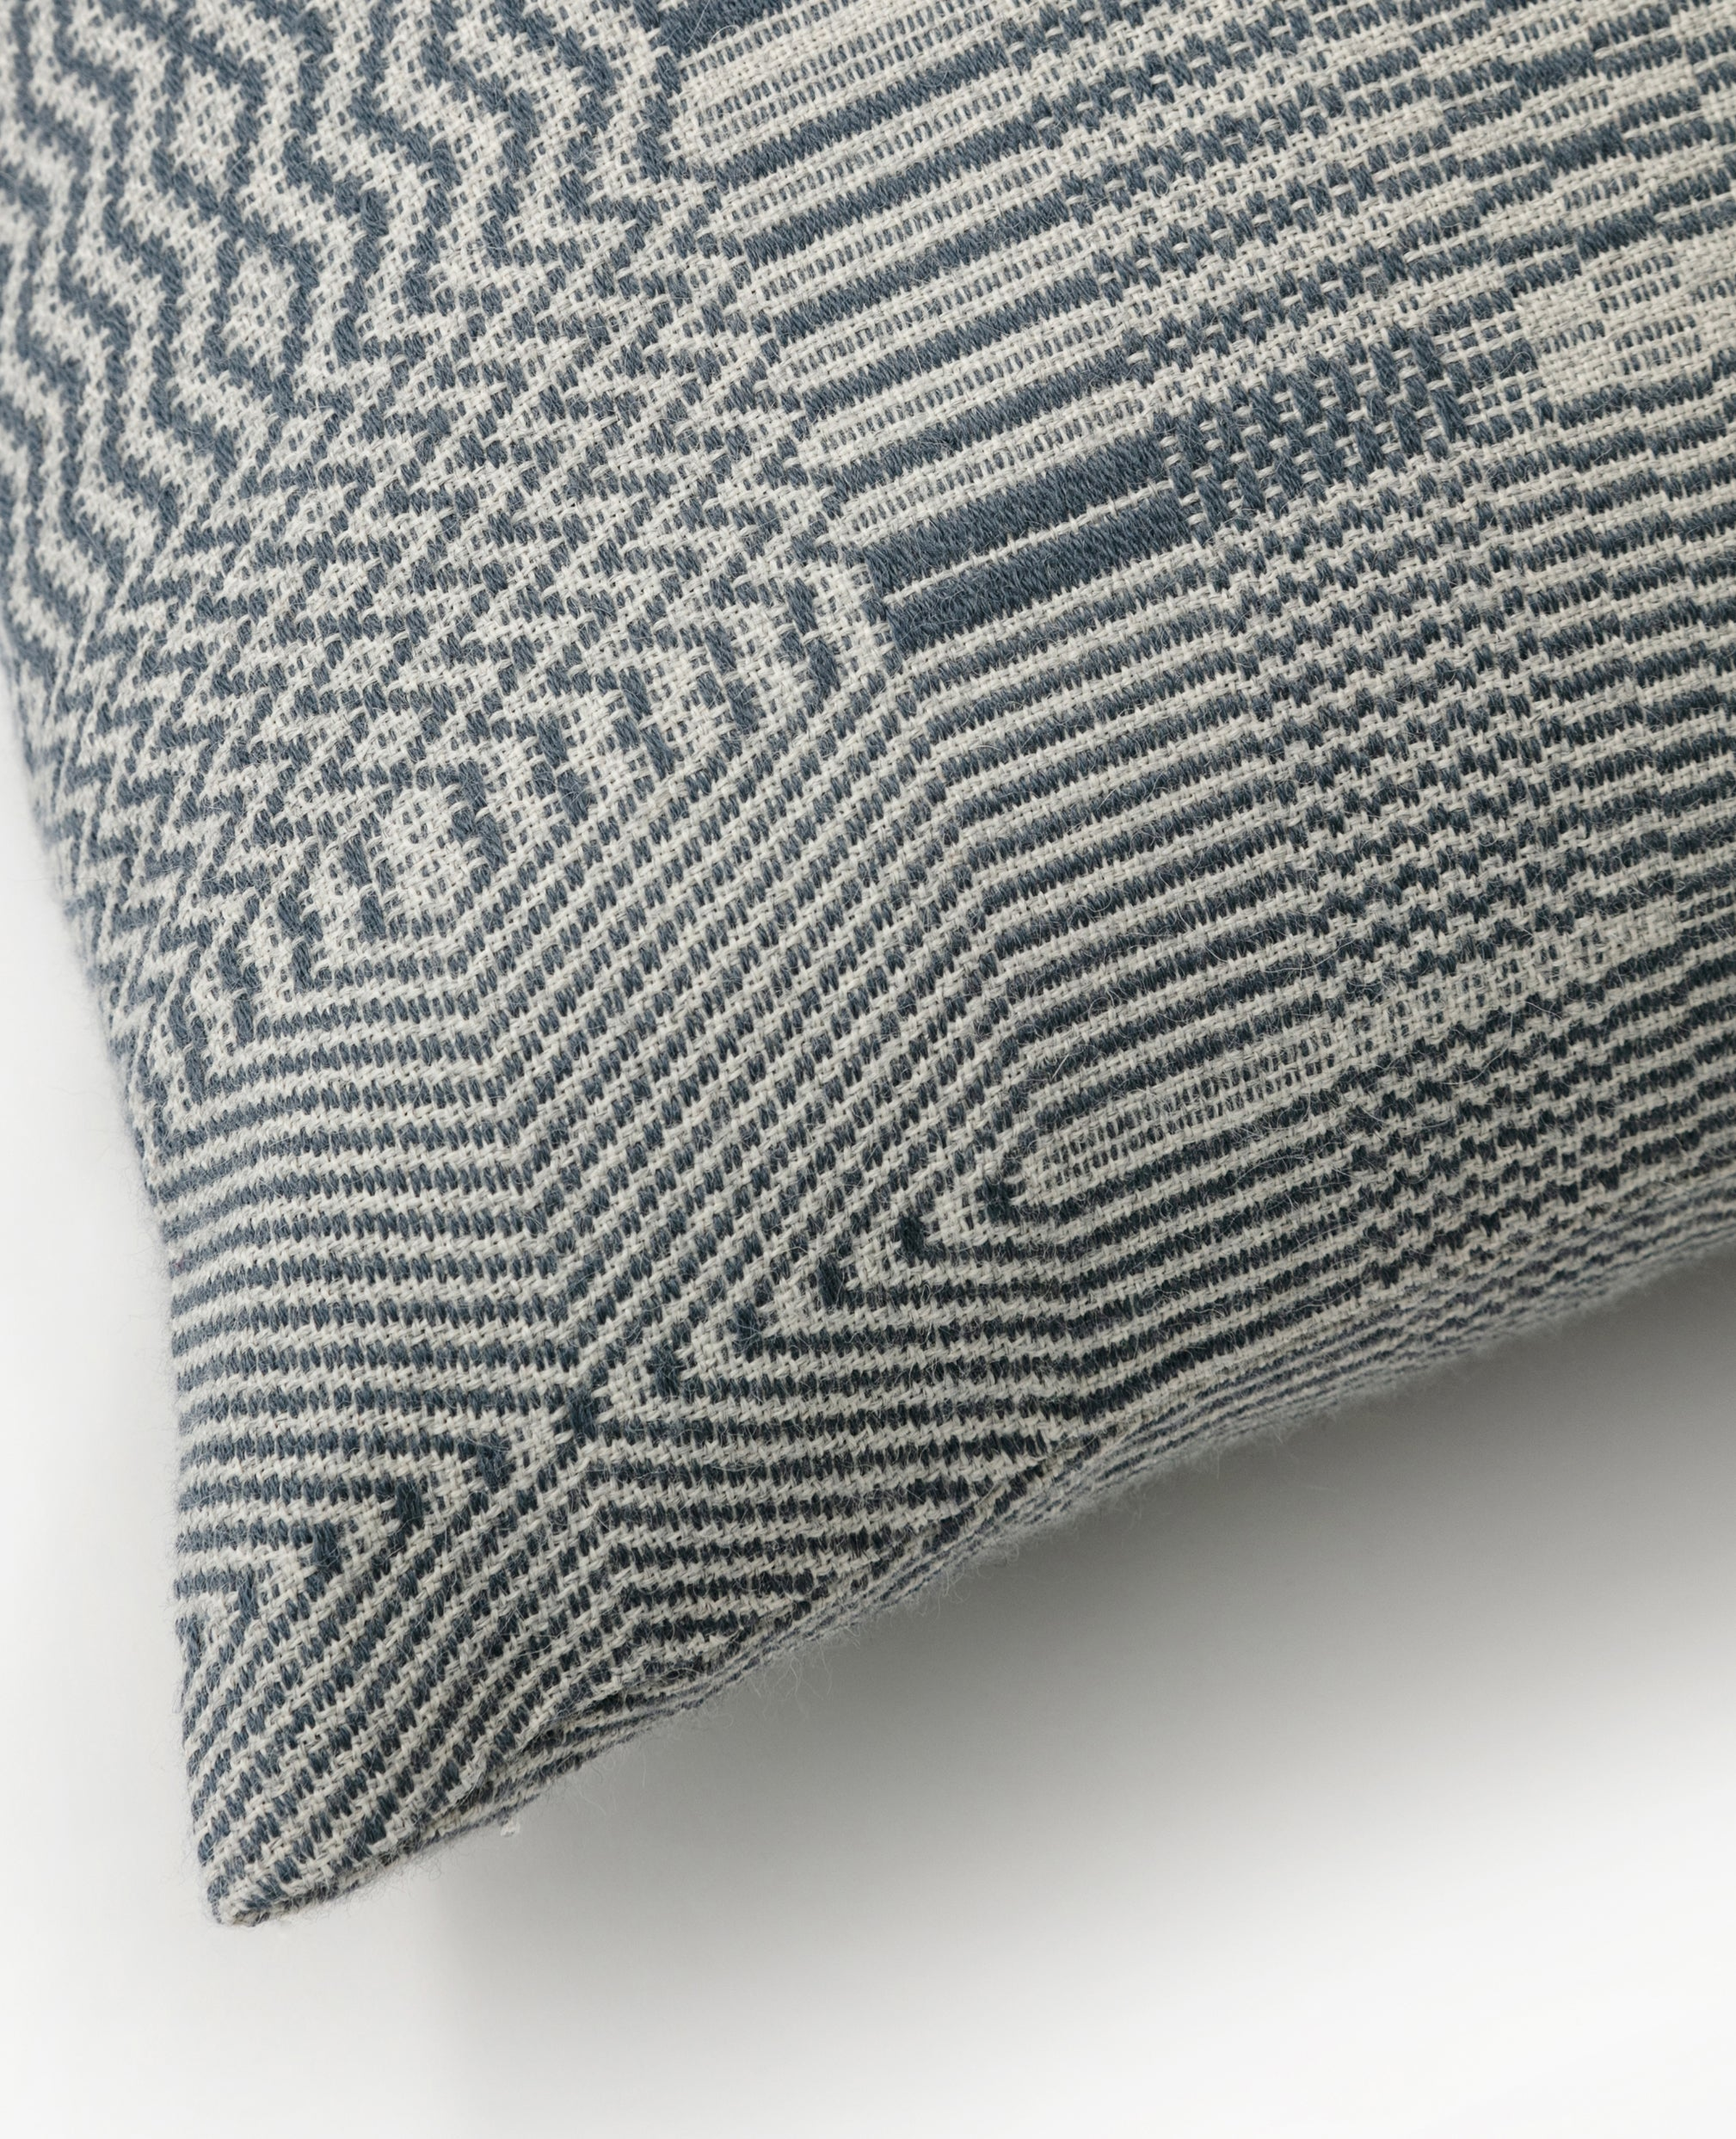 Vaeven Vandre overshot cushion detail